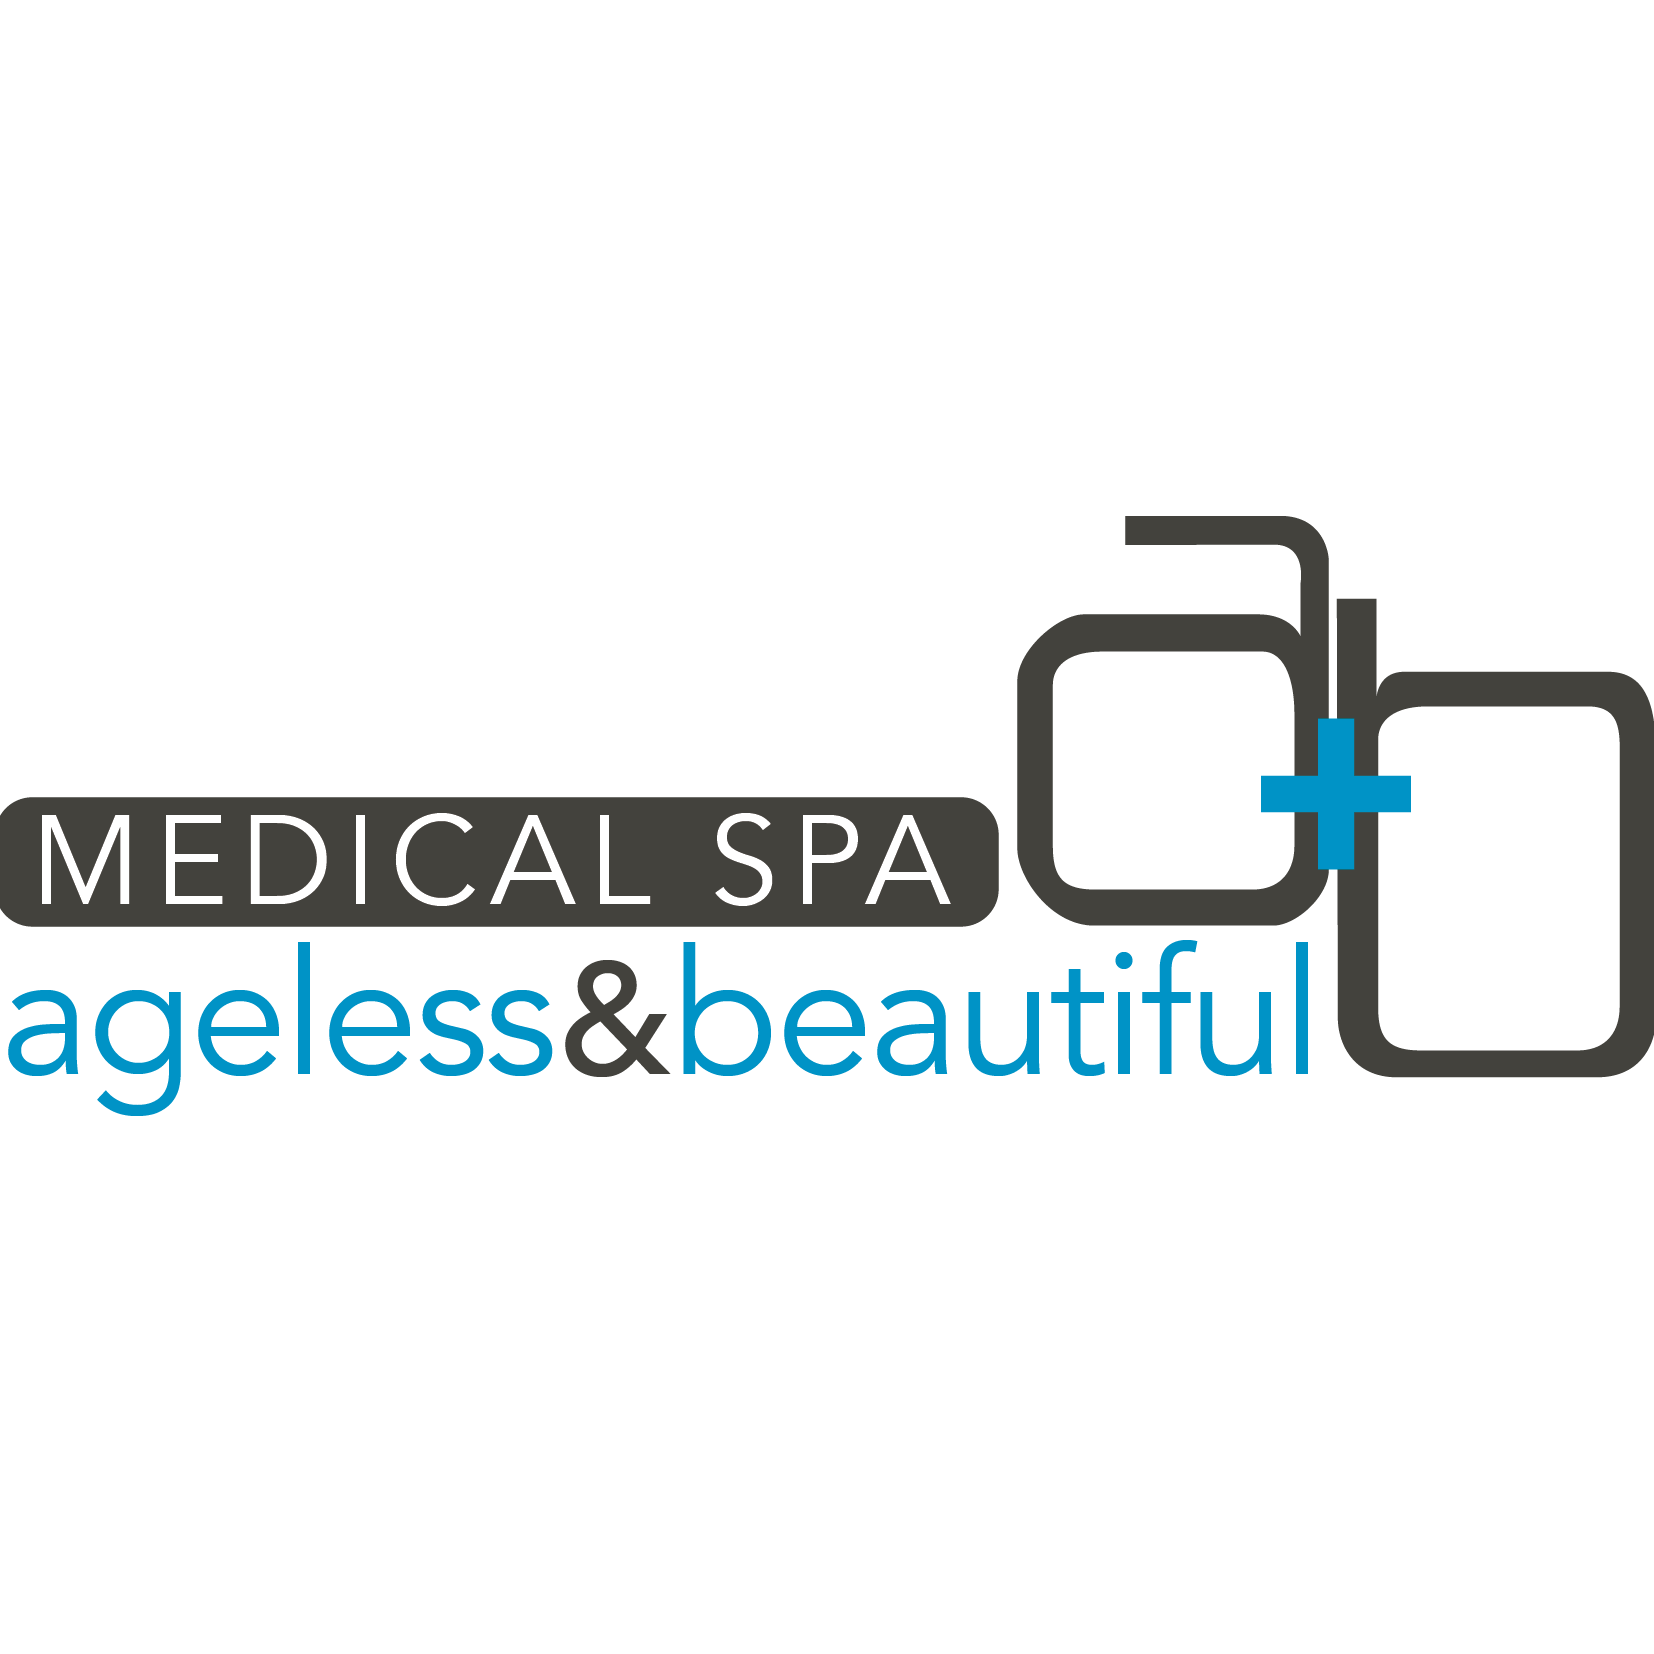 Ageless & Beautiful Medical Spa